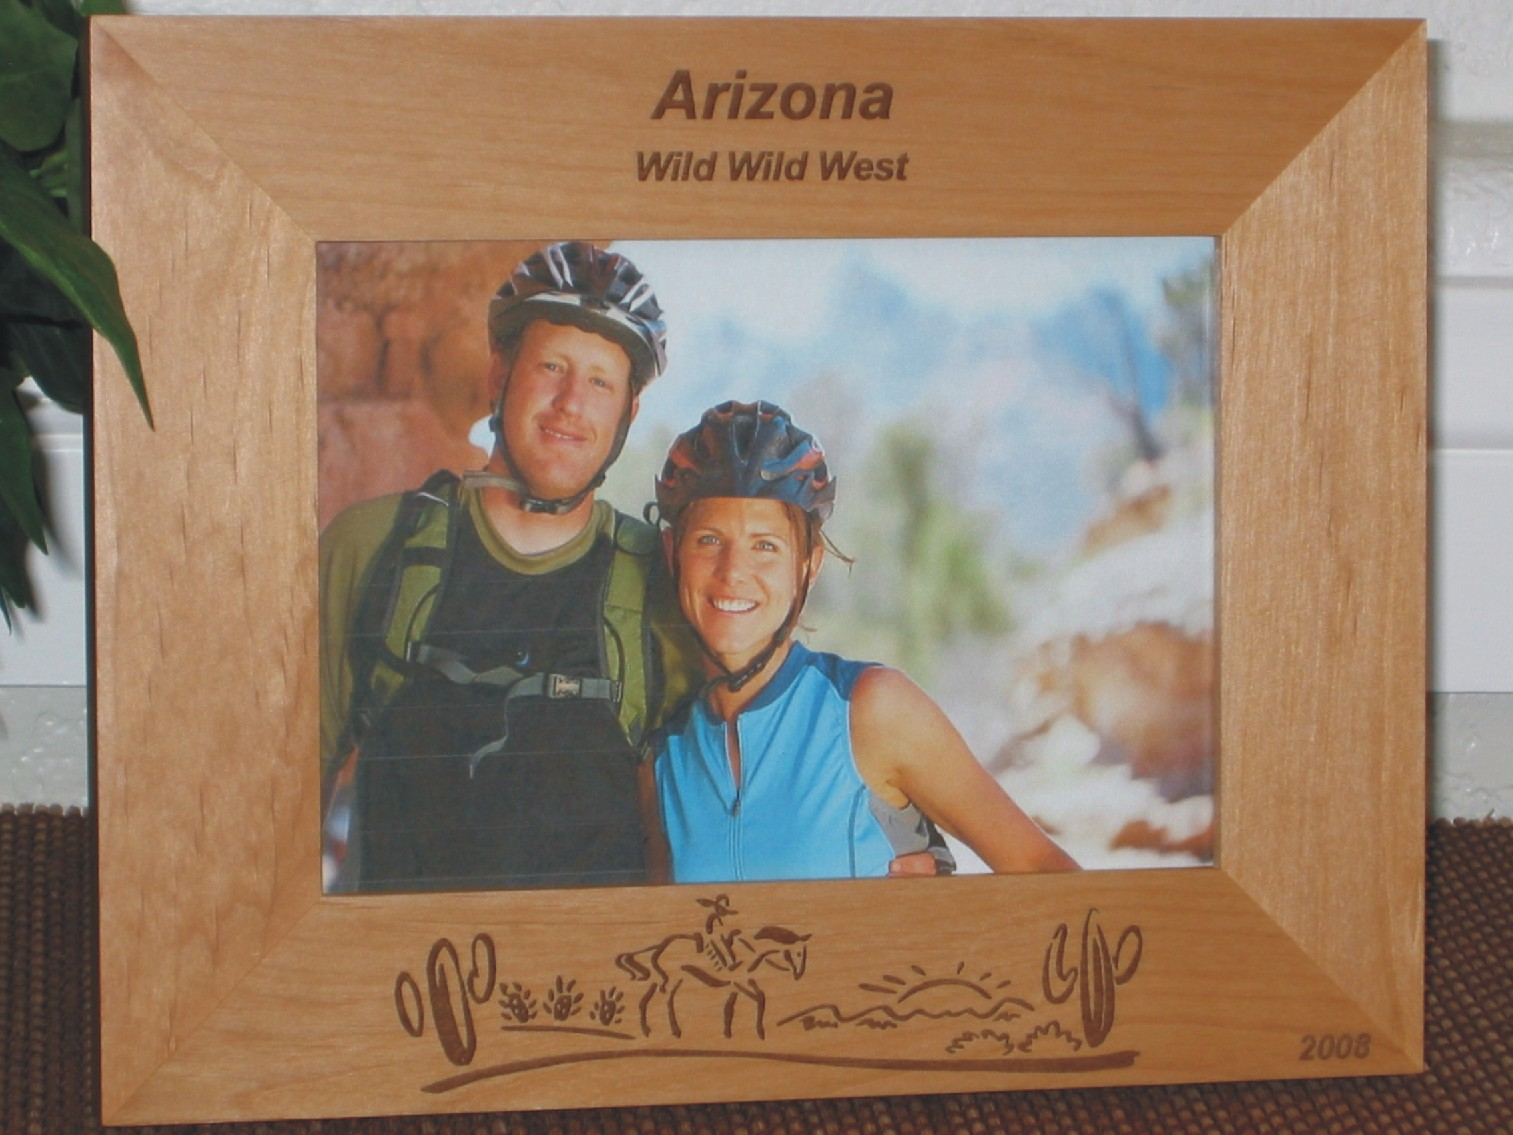 Arizona Picture Frame - Personalized Souvenir Frame - Laser Engraved ...